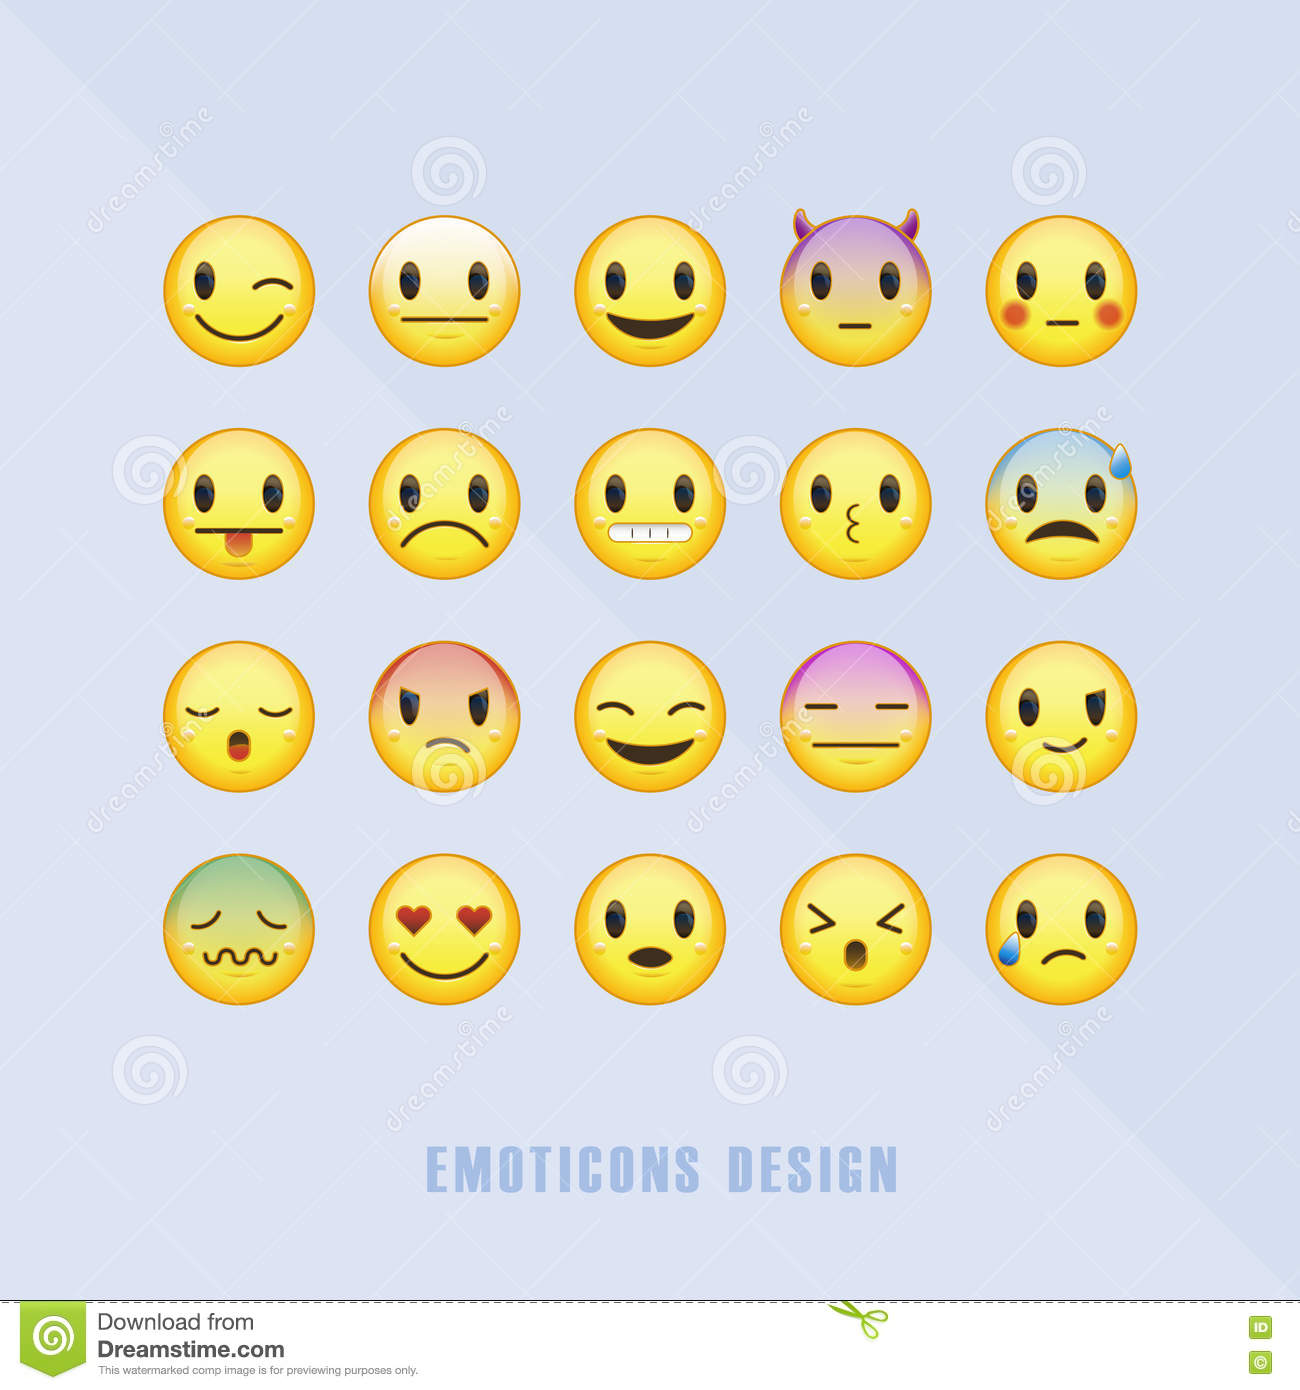 Classic emoticons set